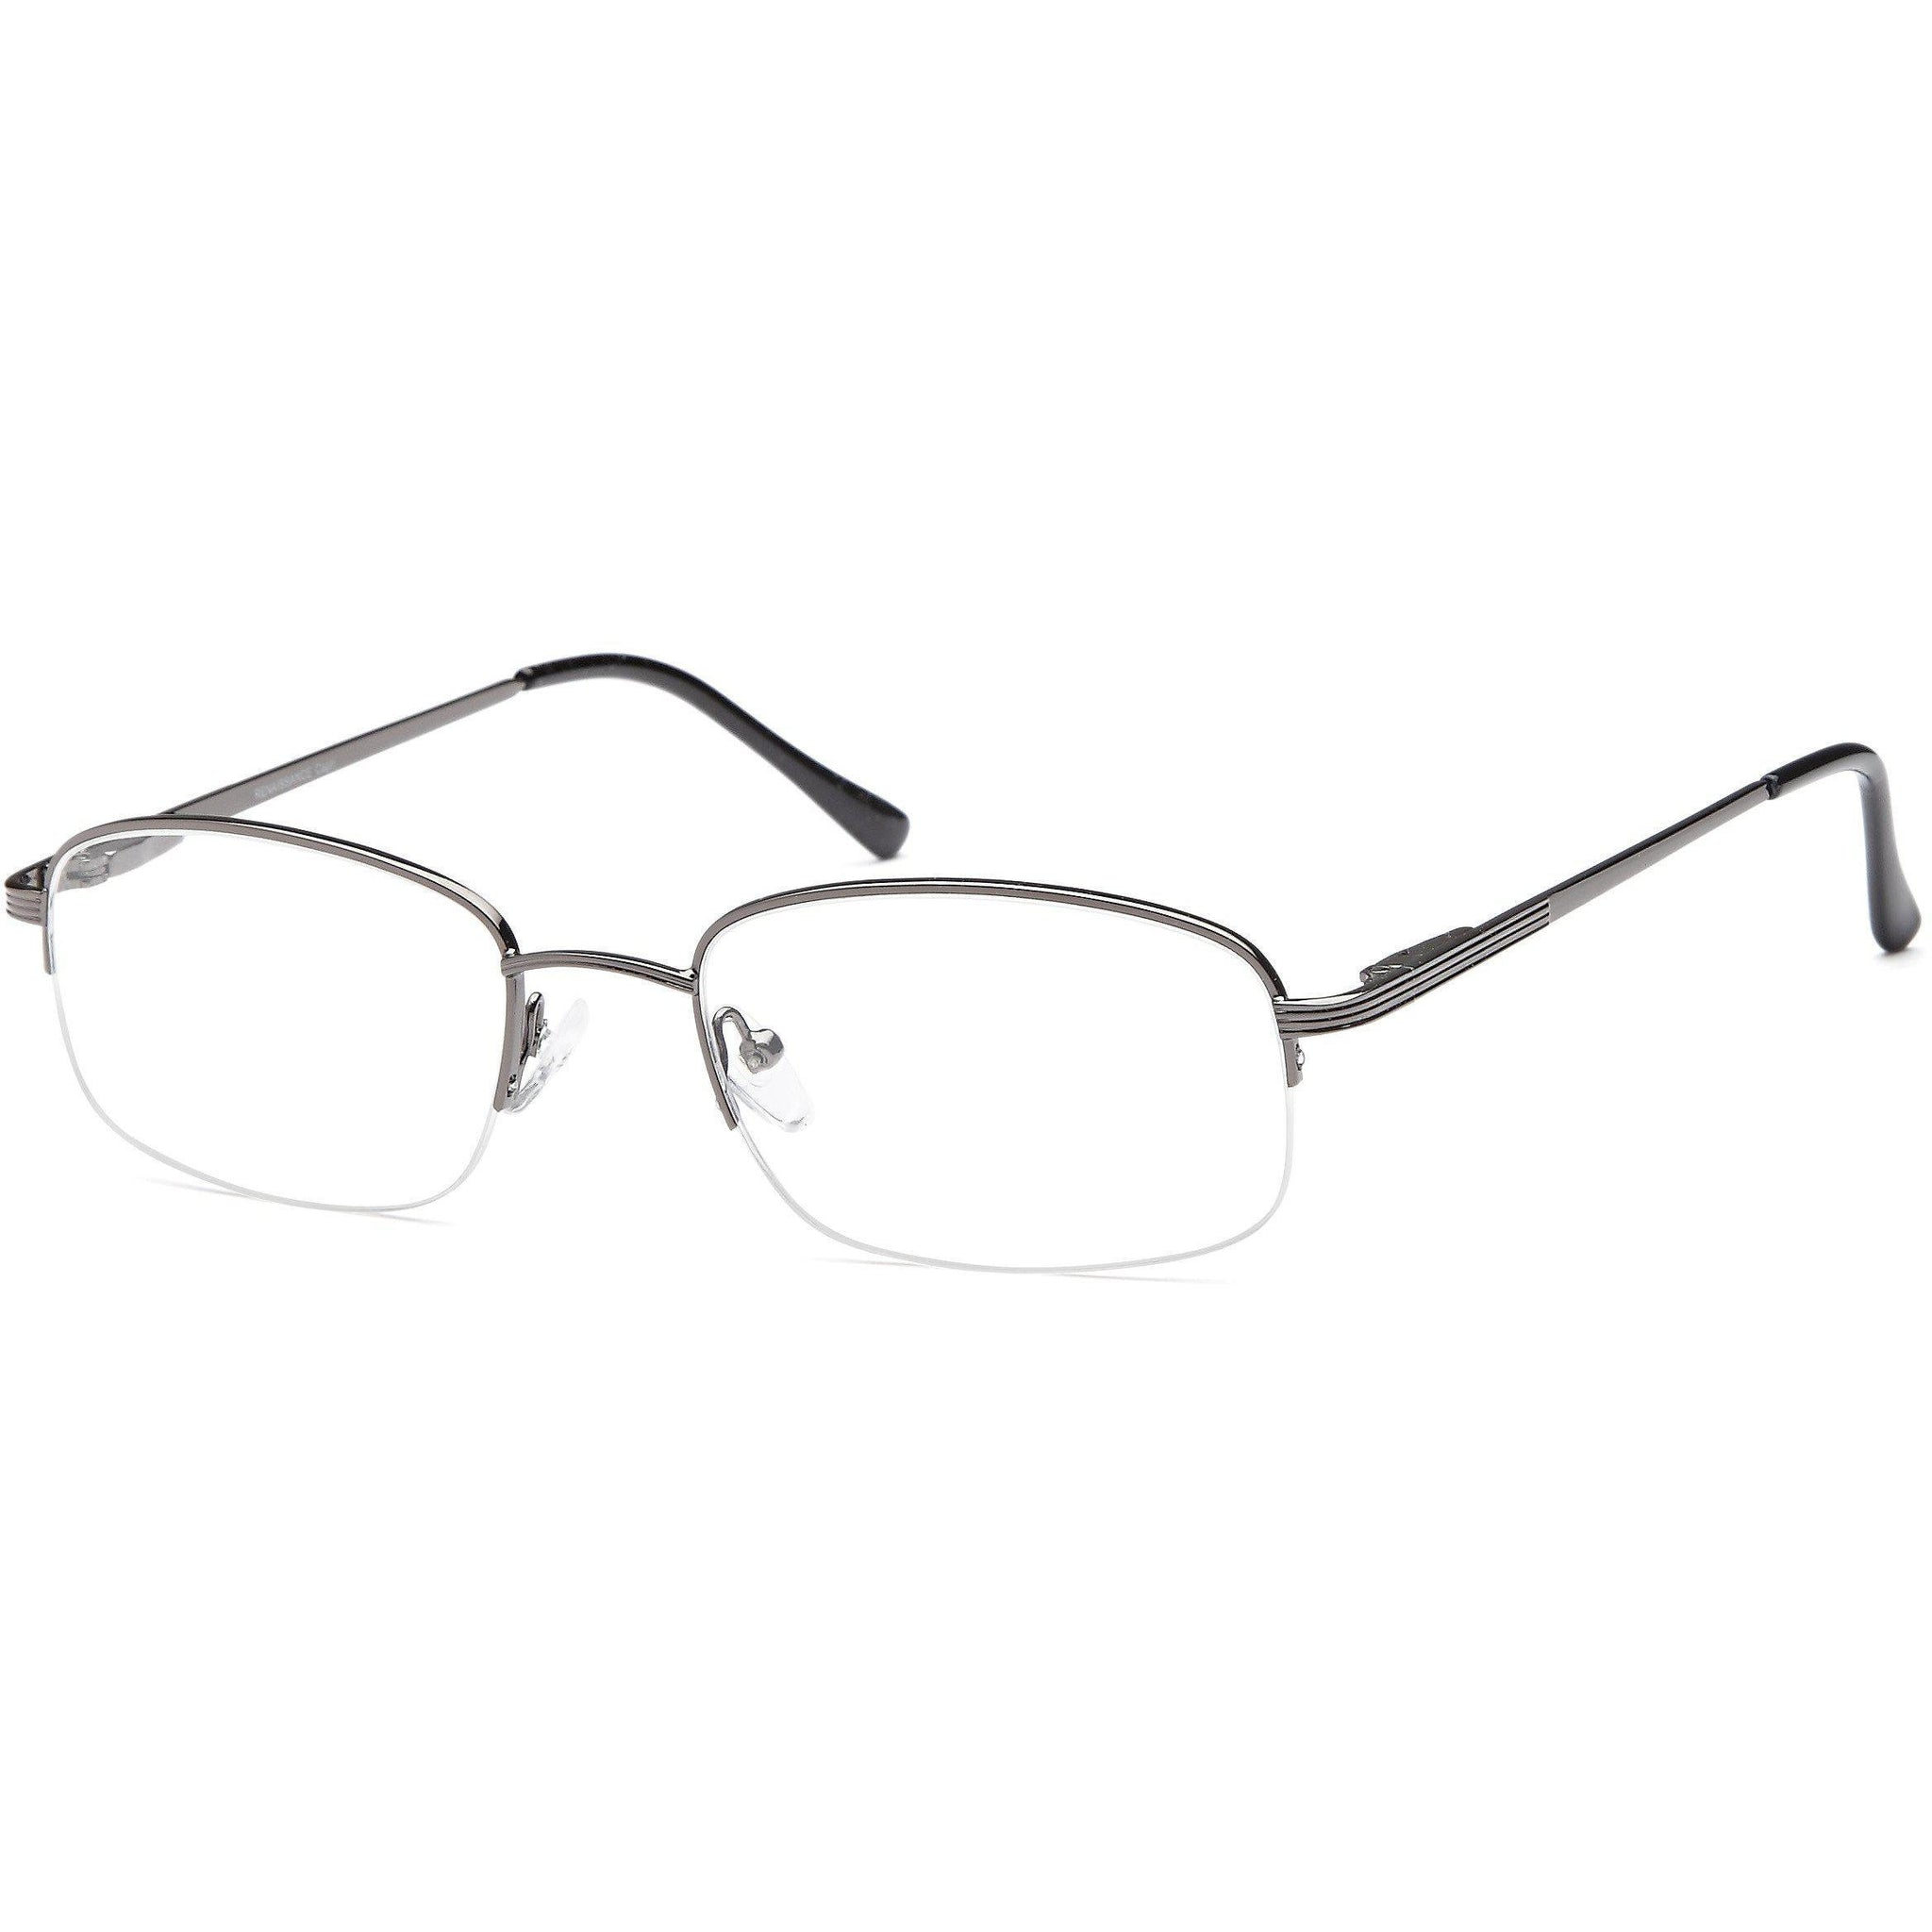 Classics Prescription Glasses RENAISSANCE Frames